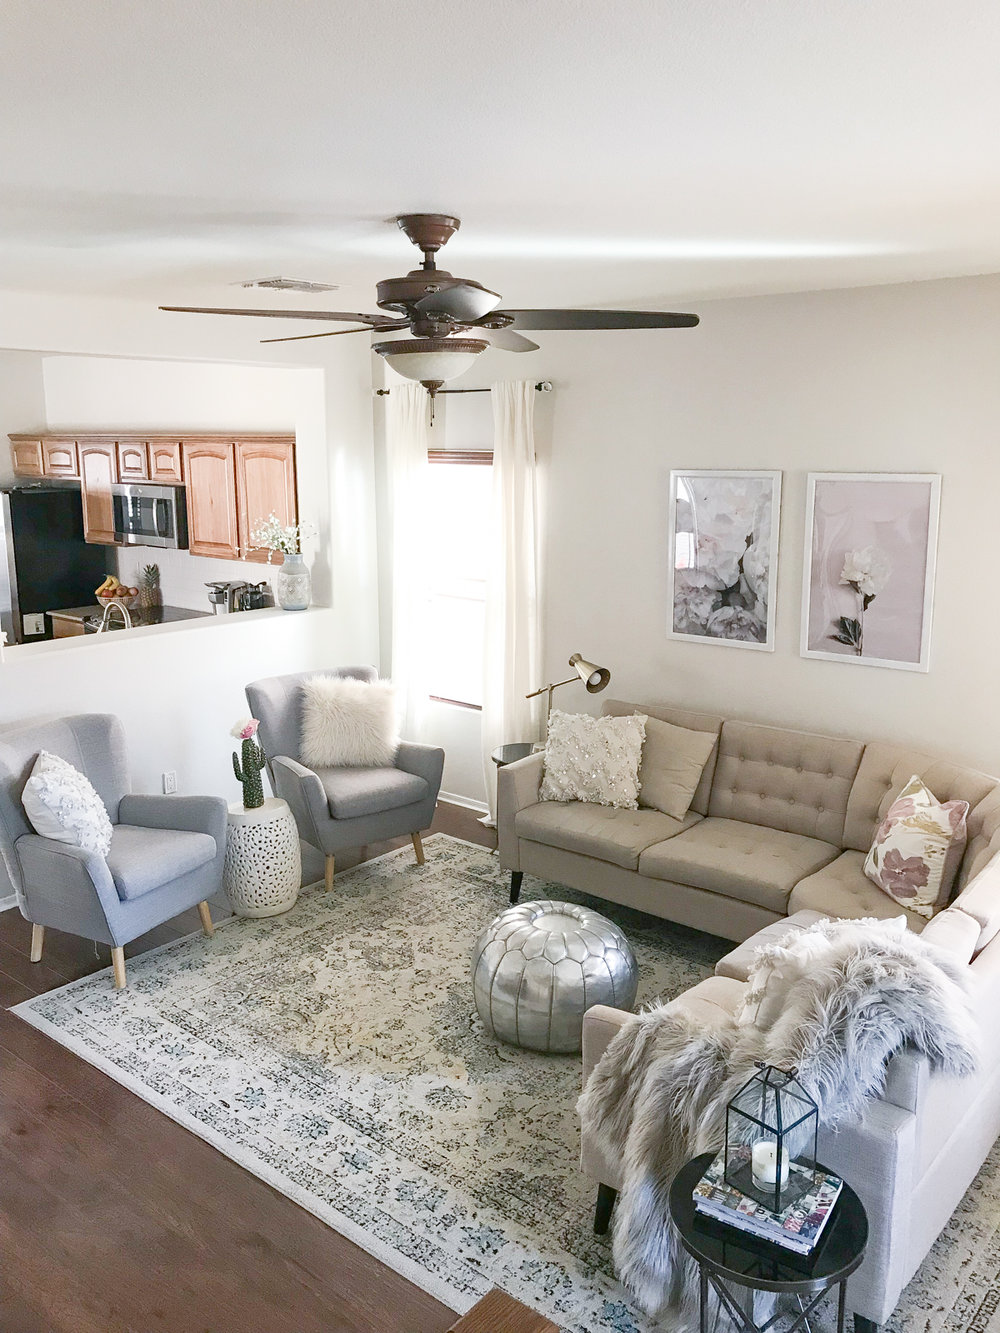 Our Living Room Update---My Happy Place! — Momma Society